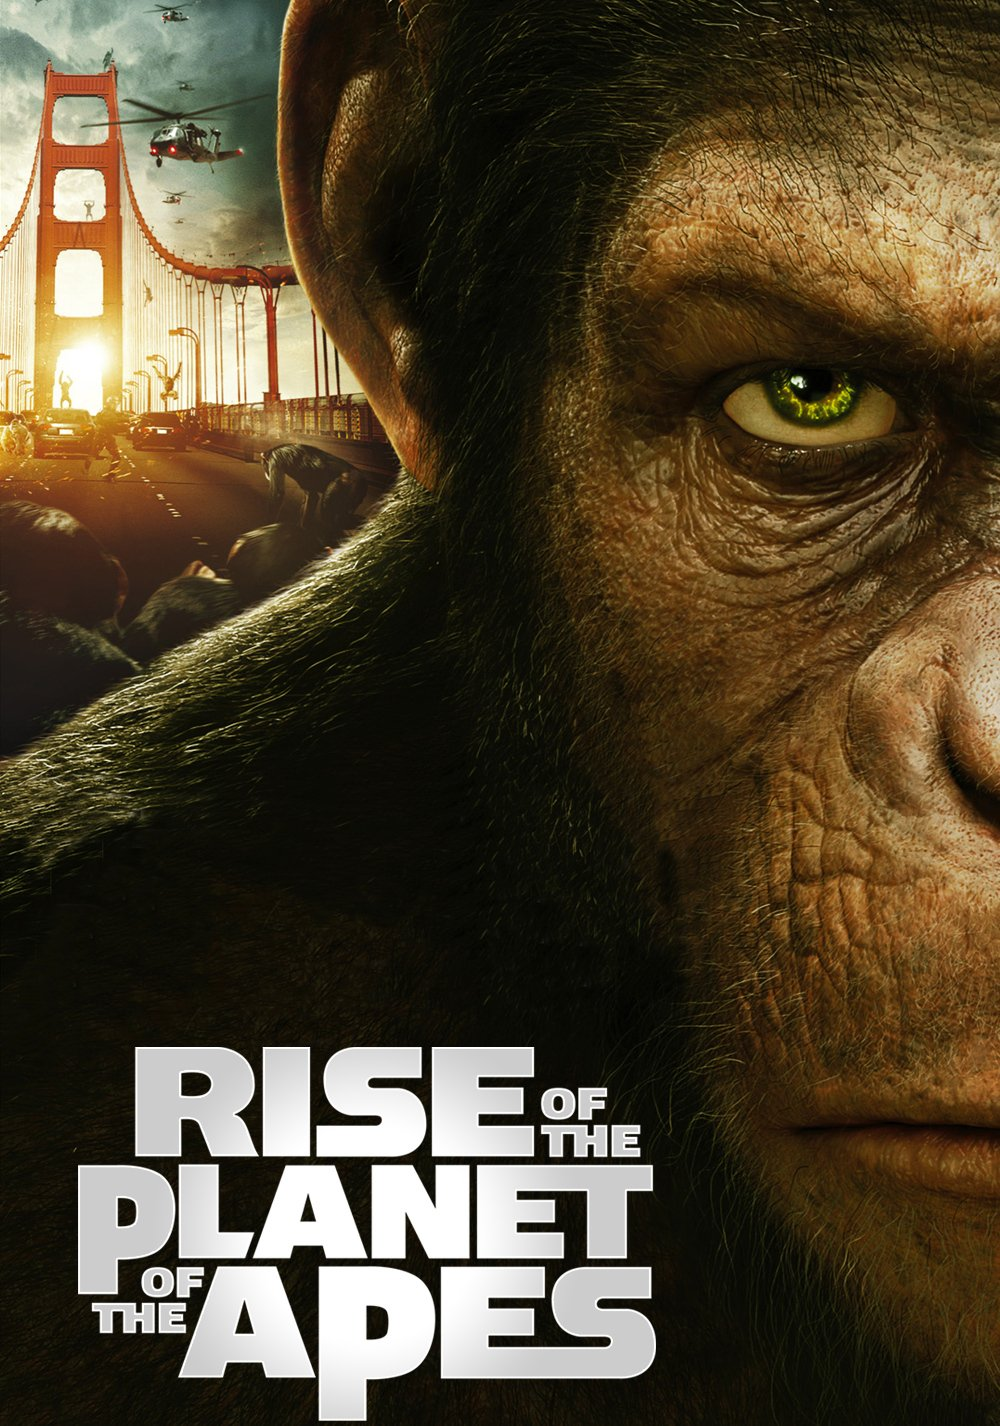 Rise of the Planet of the Apes was the launch of the new Planet of the Apes franchise.